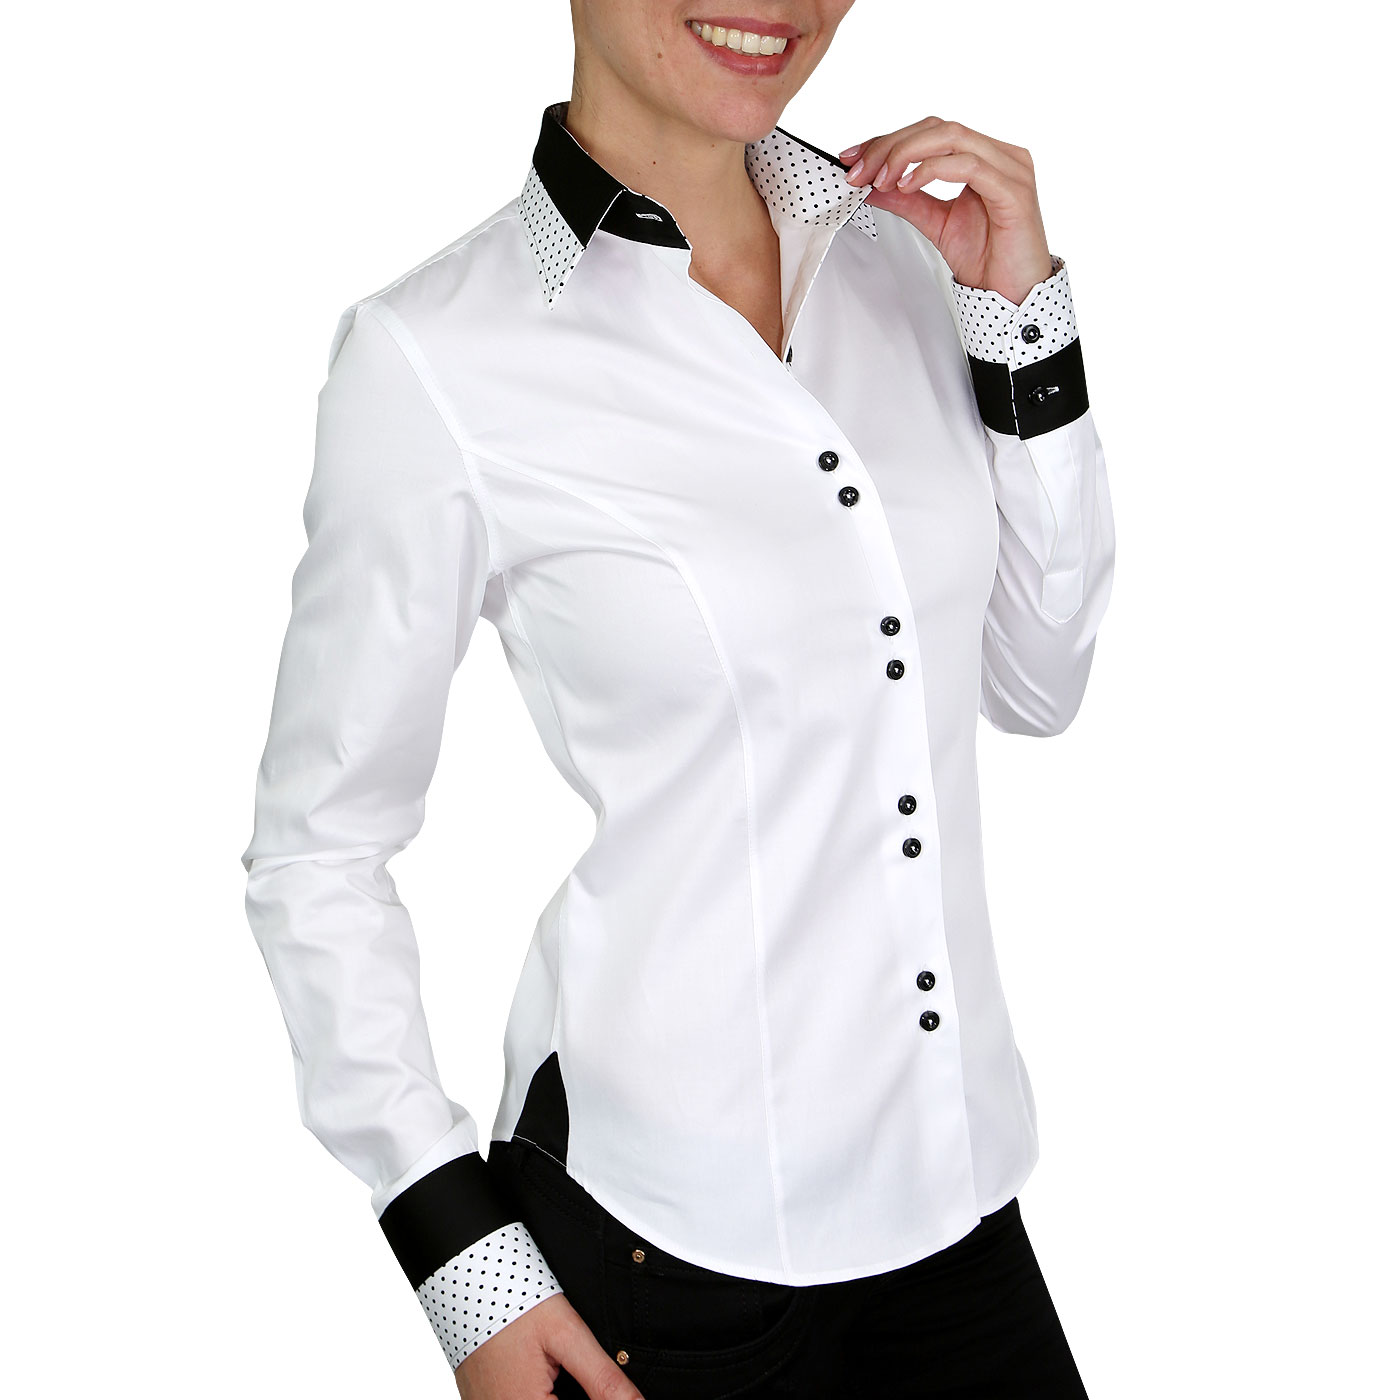 Itallian elegance woman shirt